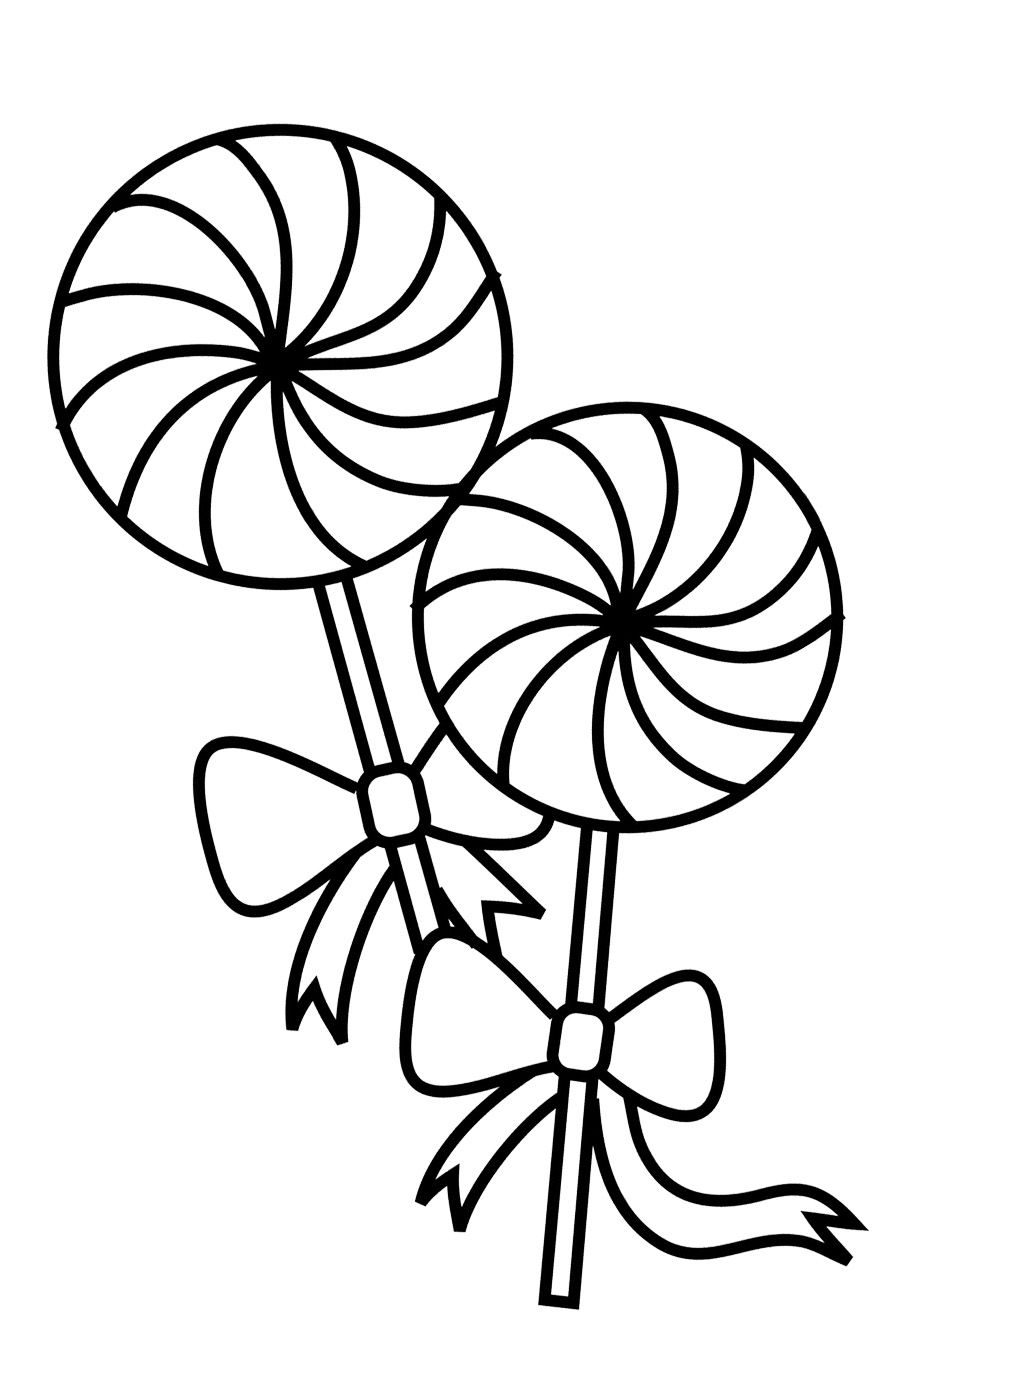 Free Printable Candy Cane Coloring Pages For Kids | 1380x1024